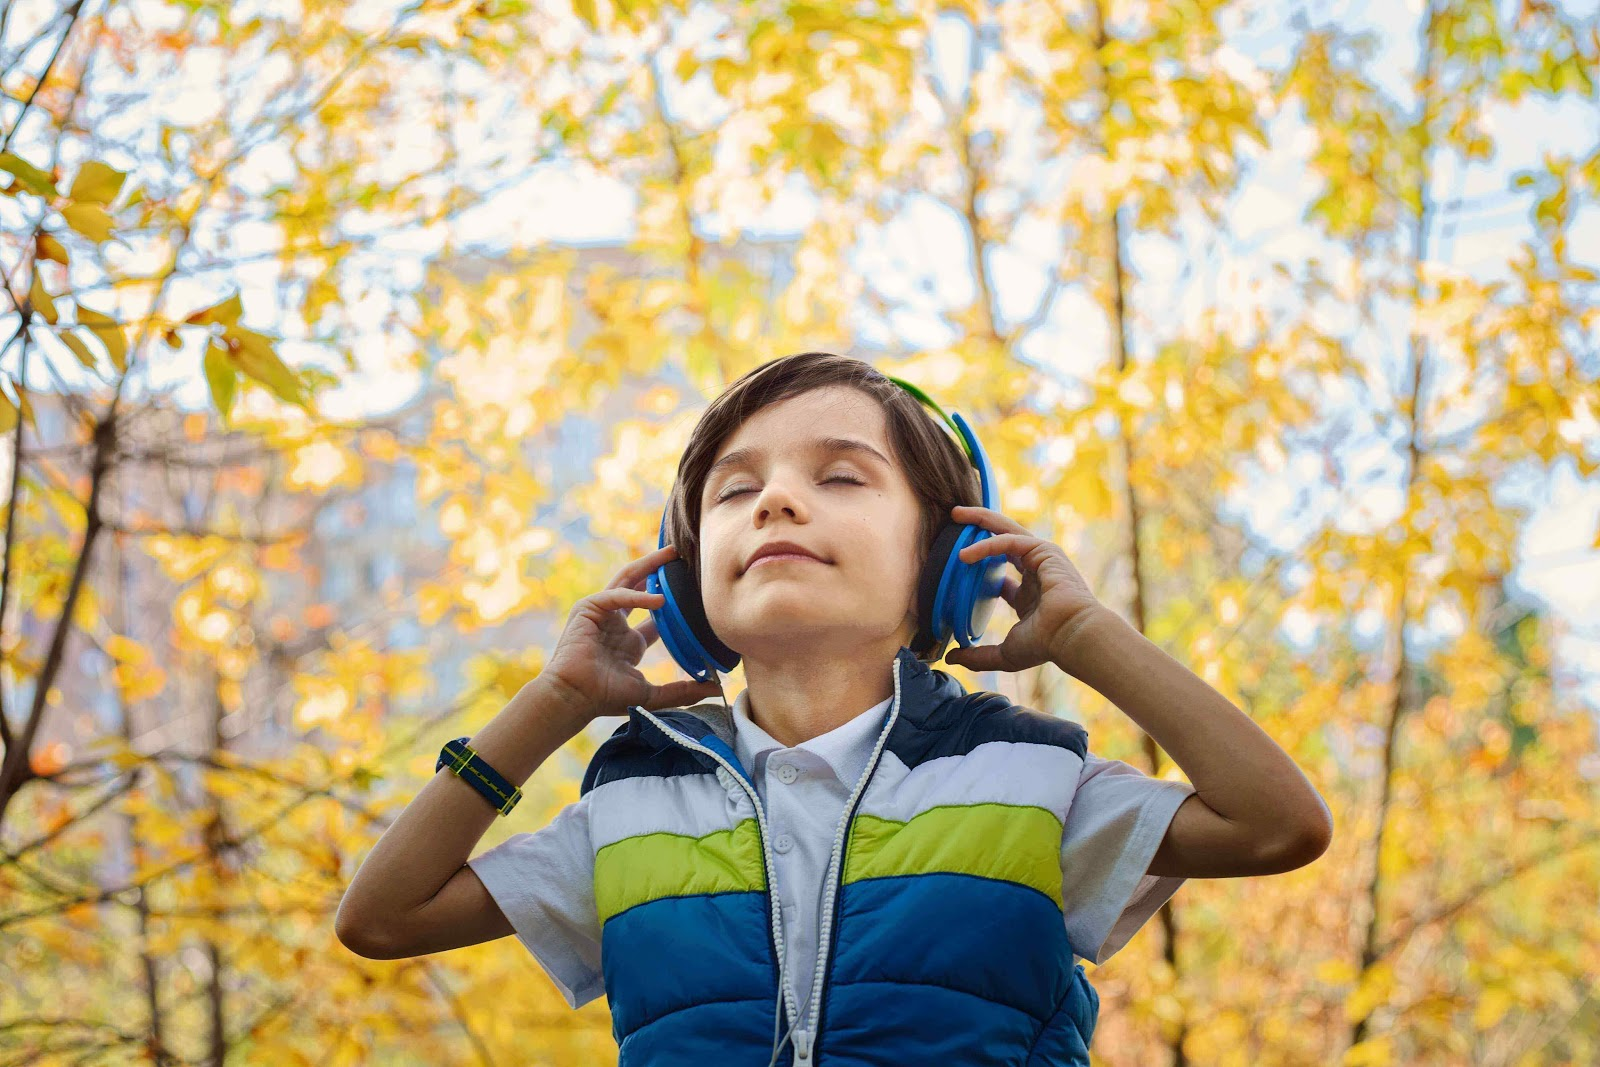 Child with headphones on holding them over his ears with a peaceful look on his face.